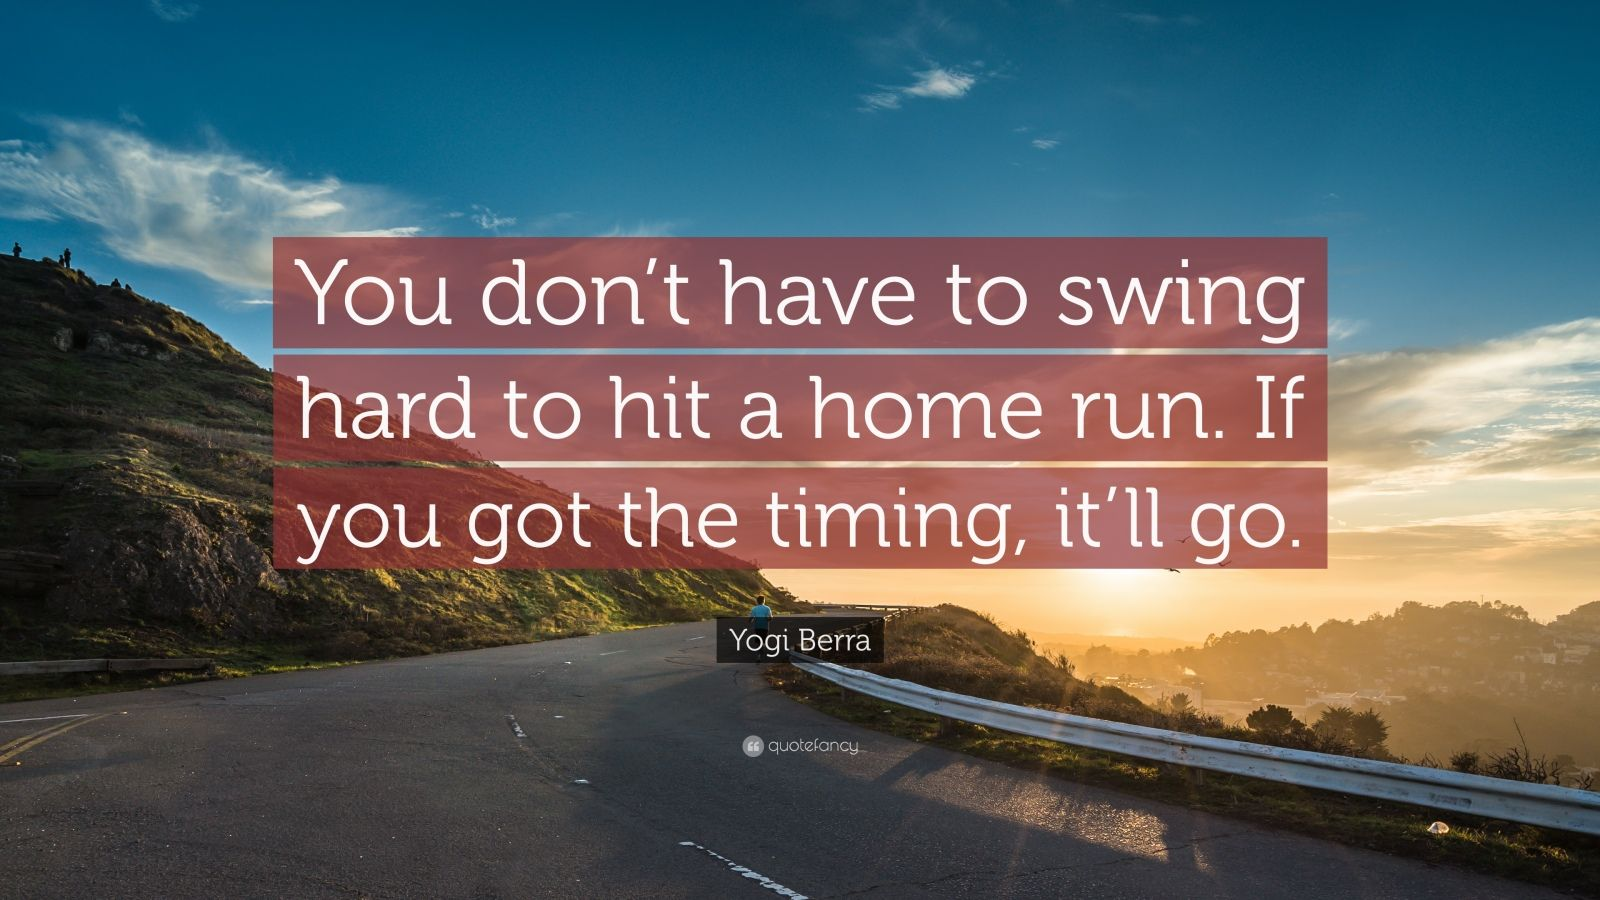 """Yogi Berra Quote: """"You don't have to swing hard to hit a home run. If you got the timing, it'll go."""""""